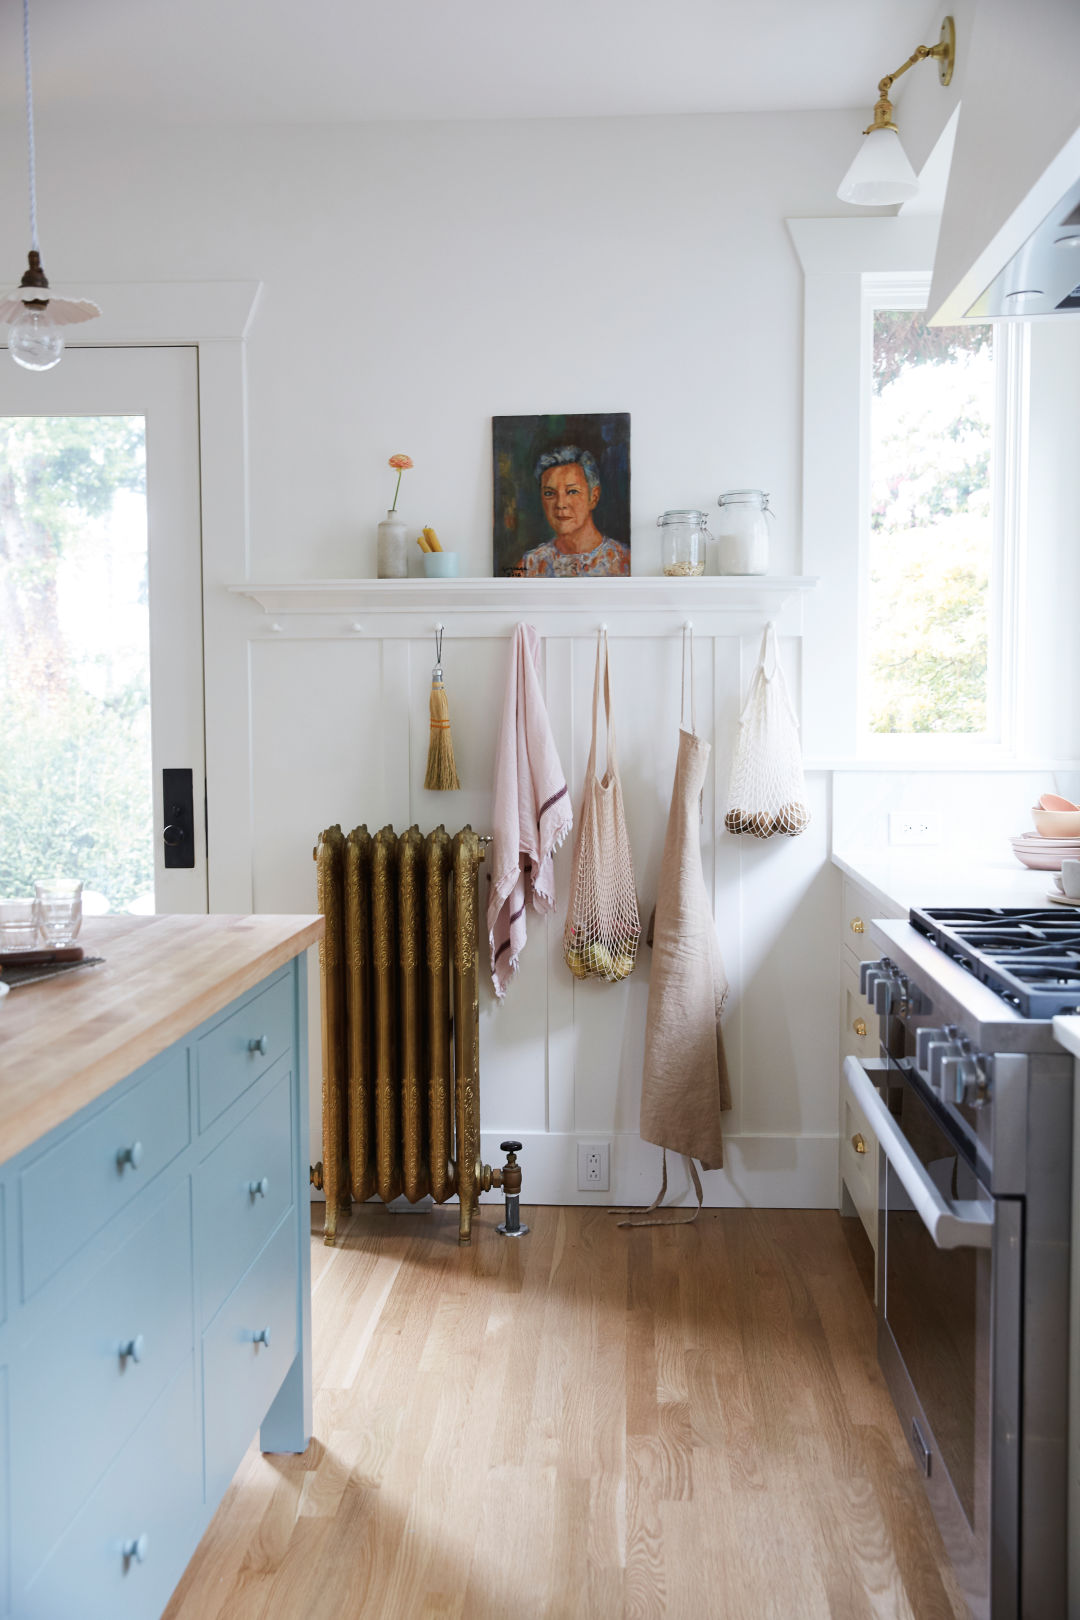 A Cookbook Author Reinvents Her Queen Anne Kitchen | Seattle Met on goler house, railroad signal house, railroad ties pricing, culvert house, blacksmith house, railroad ties for landscaping, plywood house, railroad car house, railroad ties for vegetable garden, siding house, railroad caboose tiny house, rafter house, convertible house, railroad box house, railroad ties home depot, railroad track switch, railroad tracks in arkansas, beer bottle house, railroad train house, railroad ties cabin,